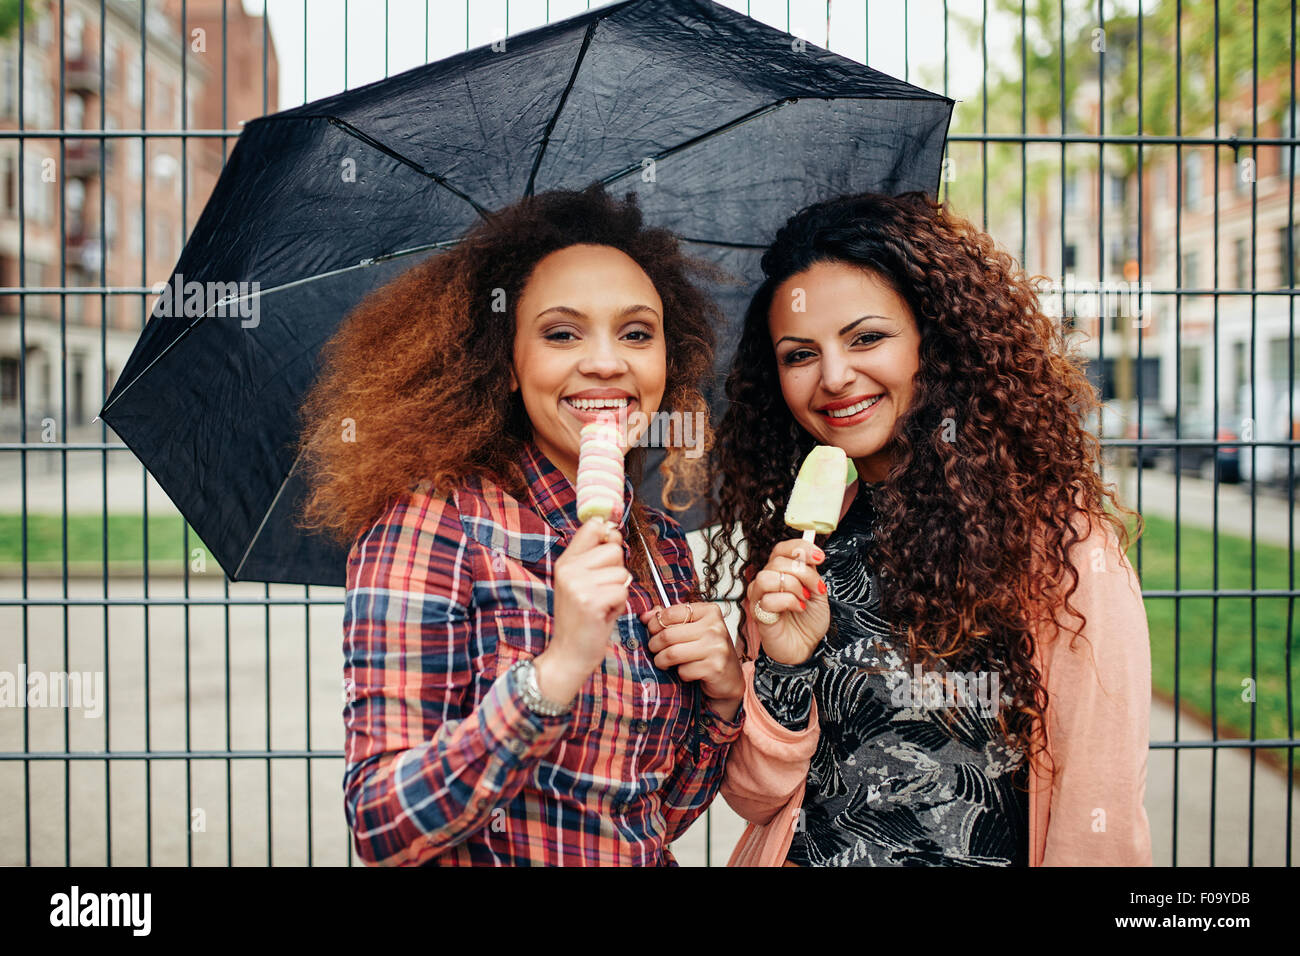 Portrait of two young women standing under umbrella eating an ice cream. Happy young female friends outdoor. - Stock Image